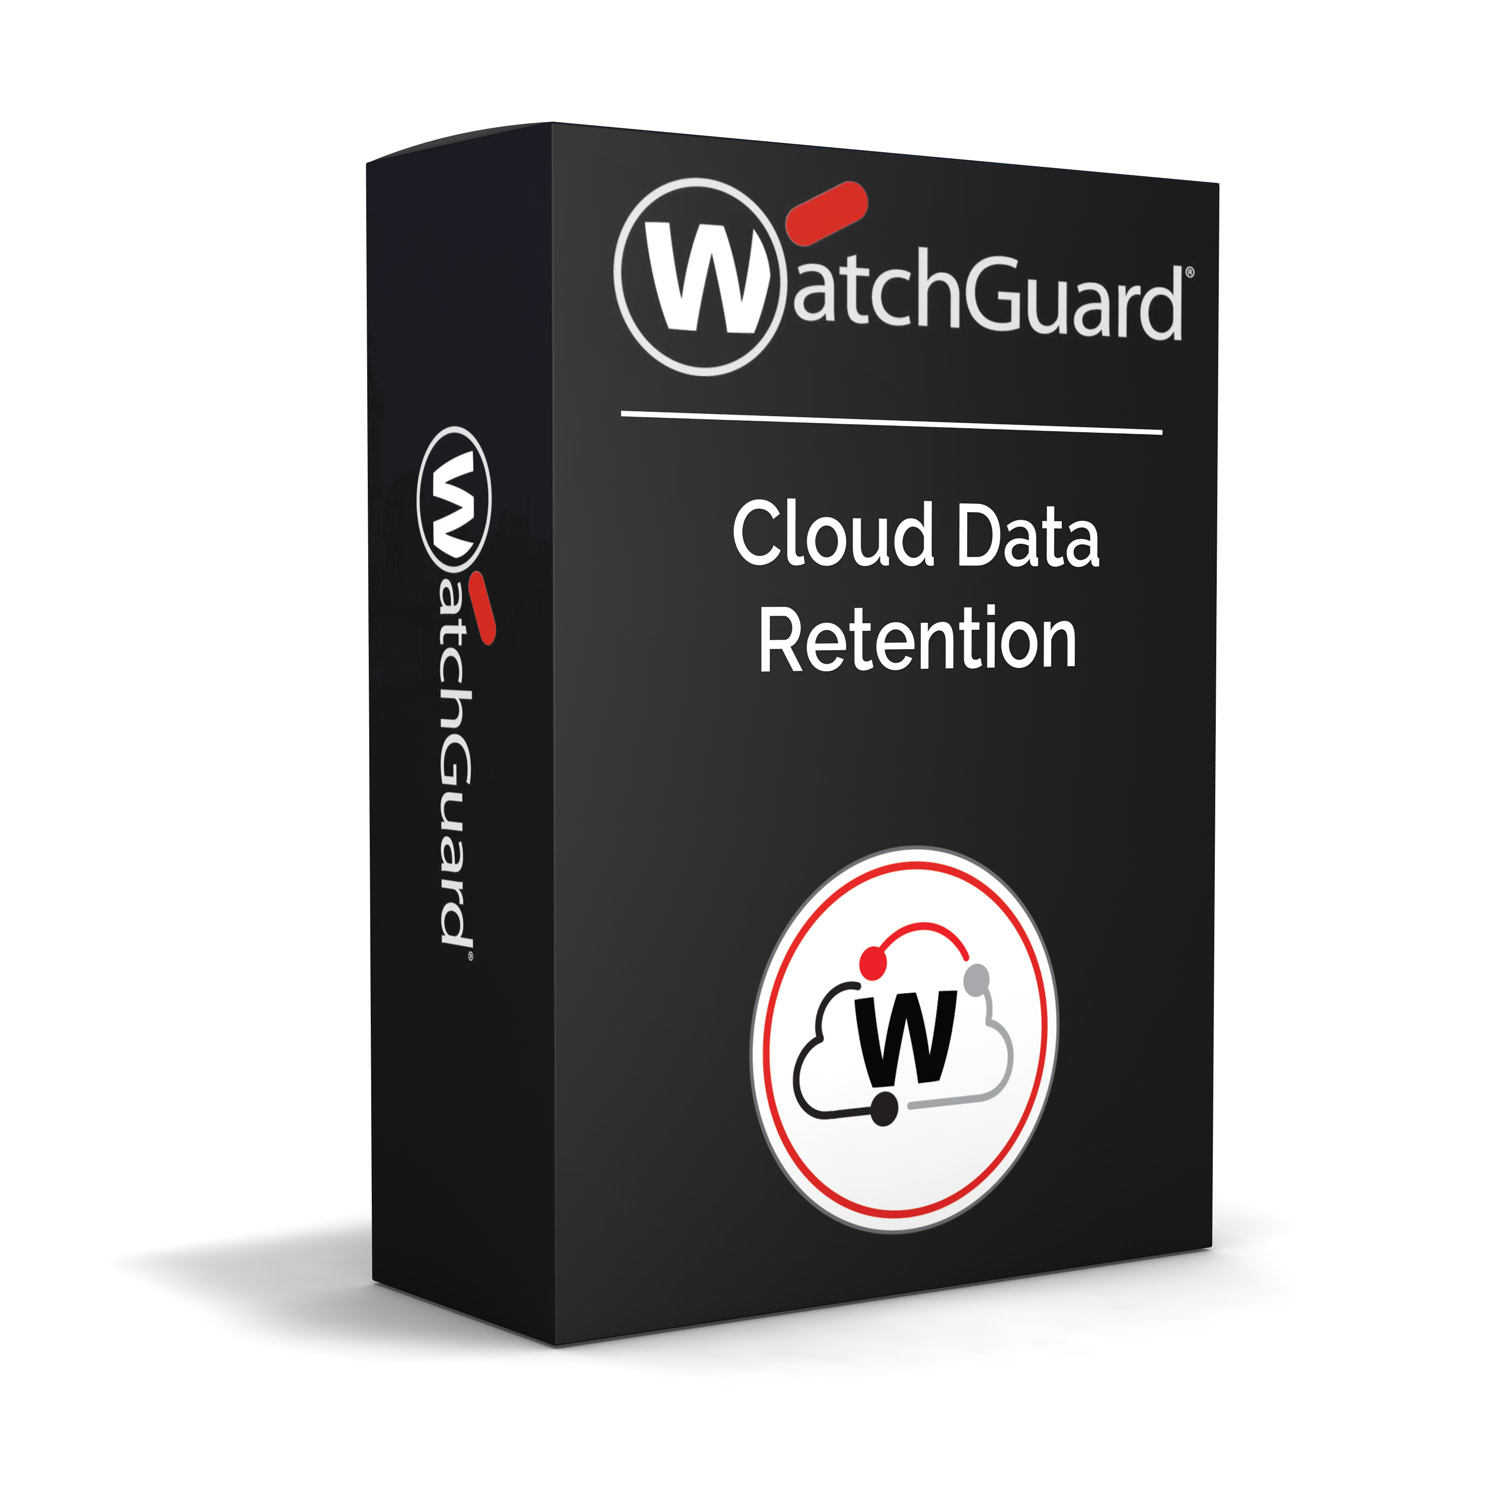 WatchGuard Cloud 1-month data retention for T55/T55-W - 3-yr